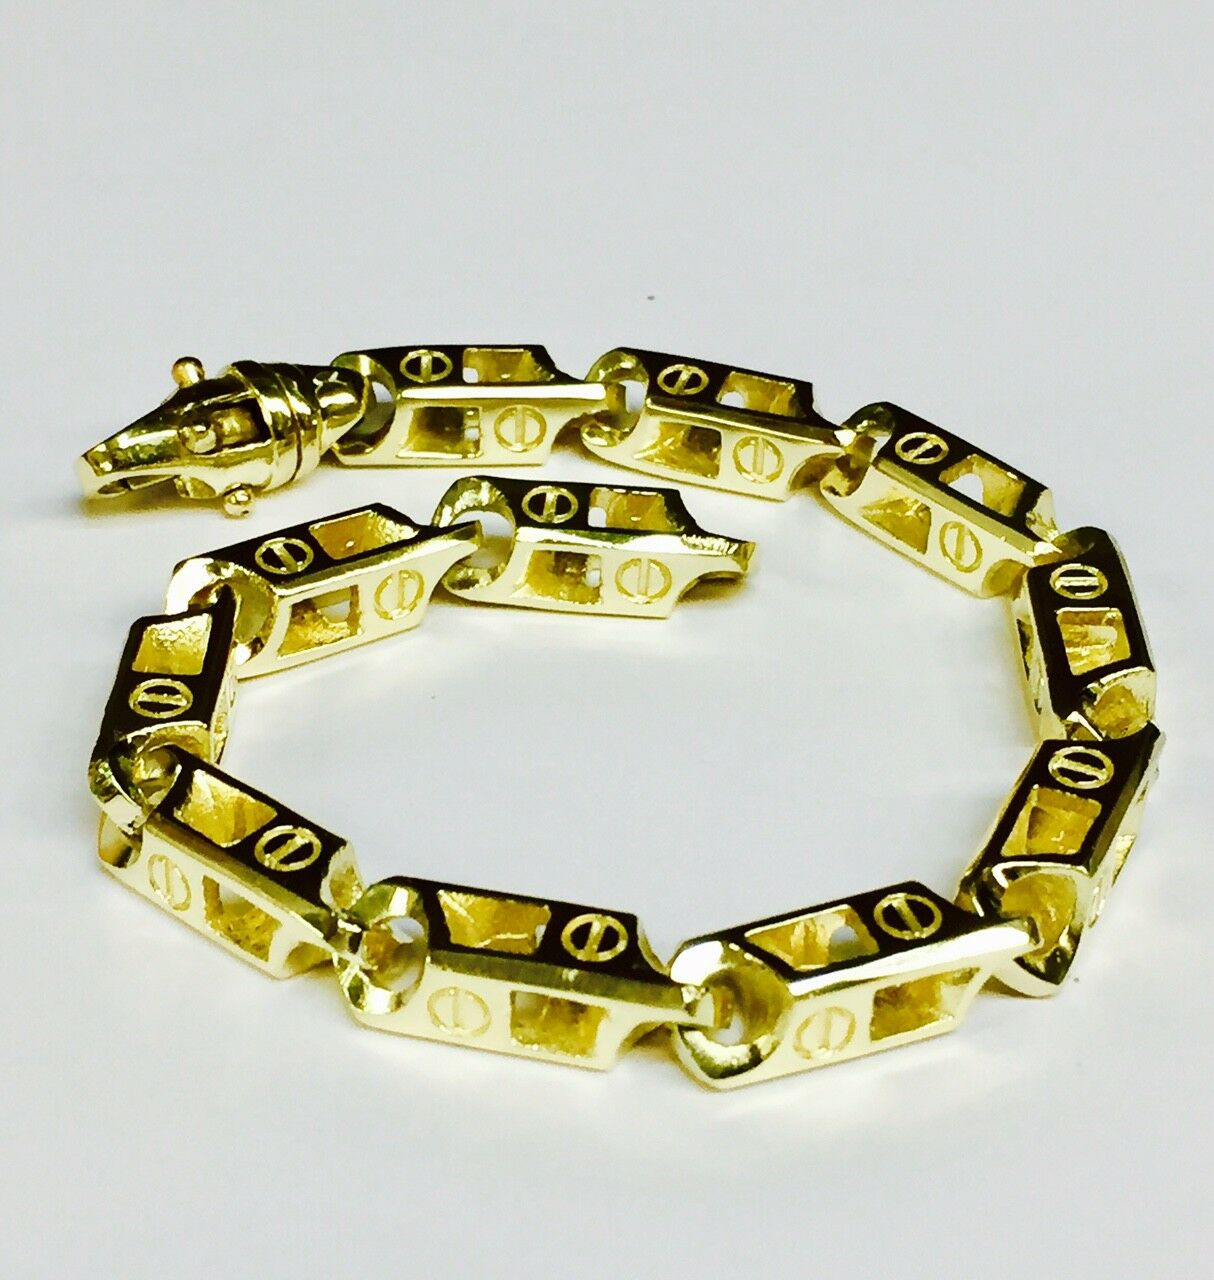 18k Solid Yellow gold Handmade Fashion Link Men Chain Bracelet 8.5  66grm  6.5MM